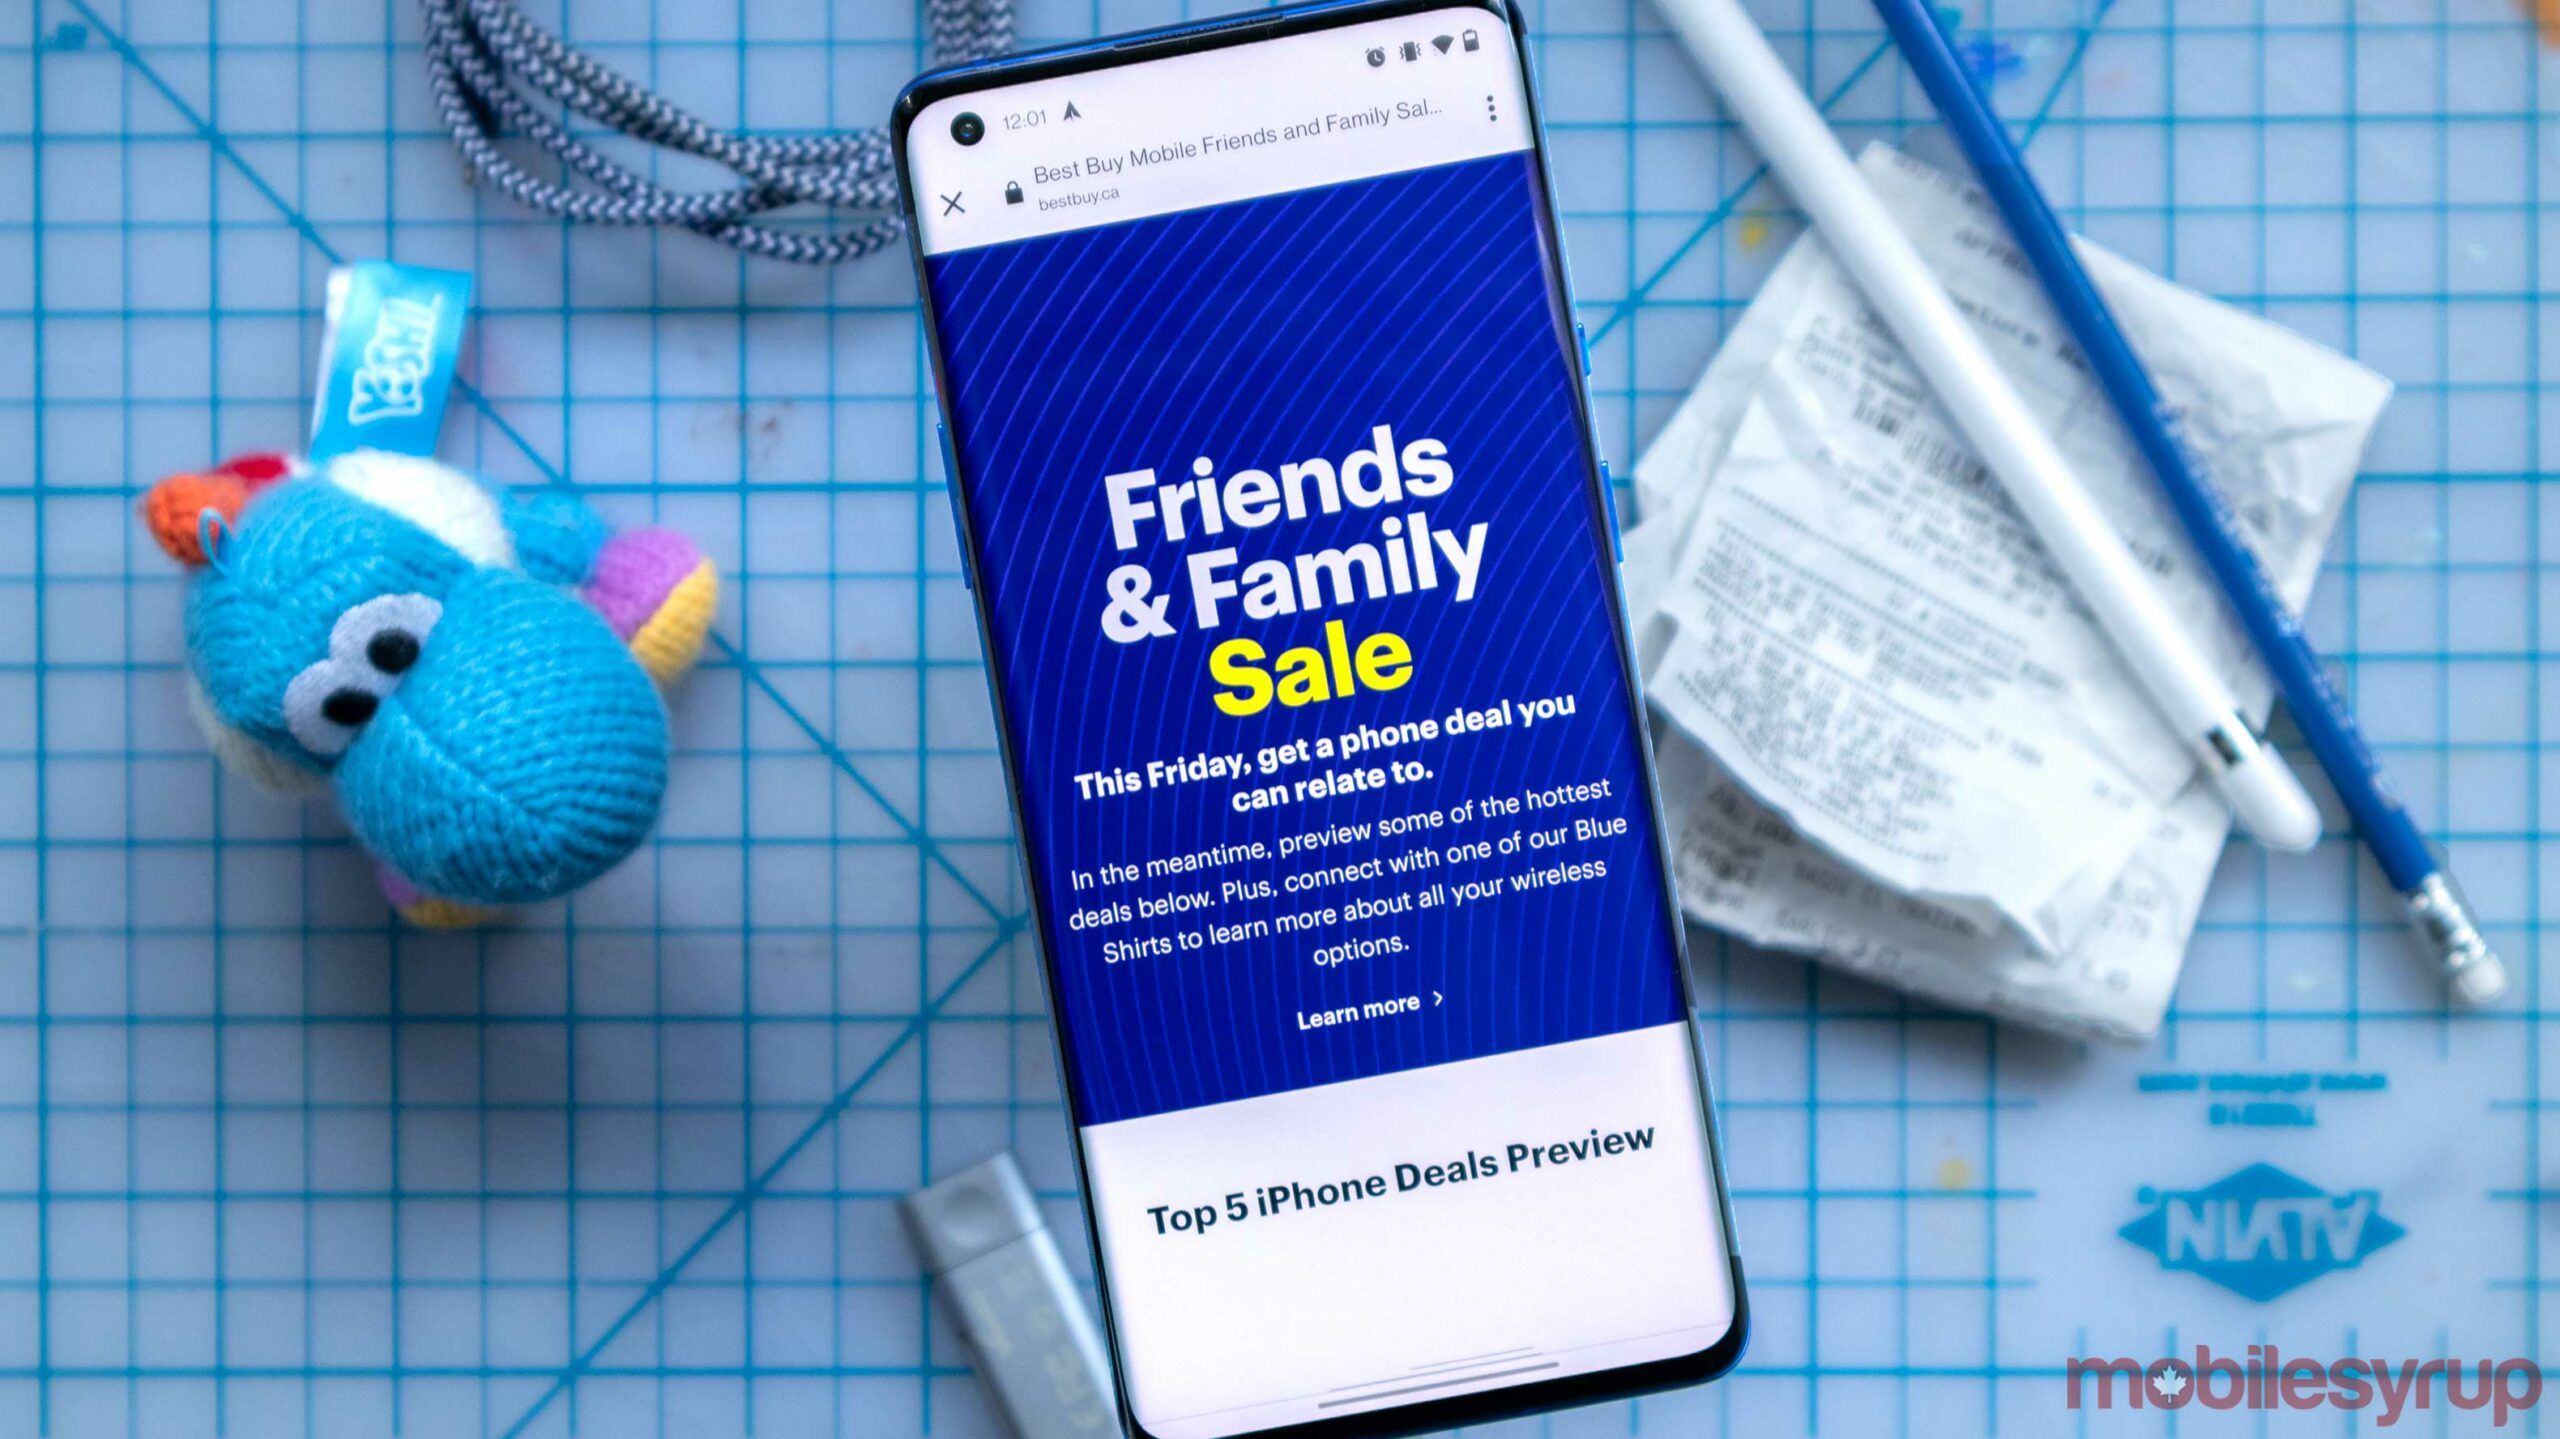 Best Buy Friends and Family Sale